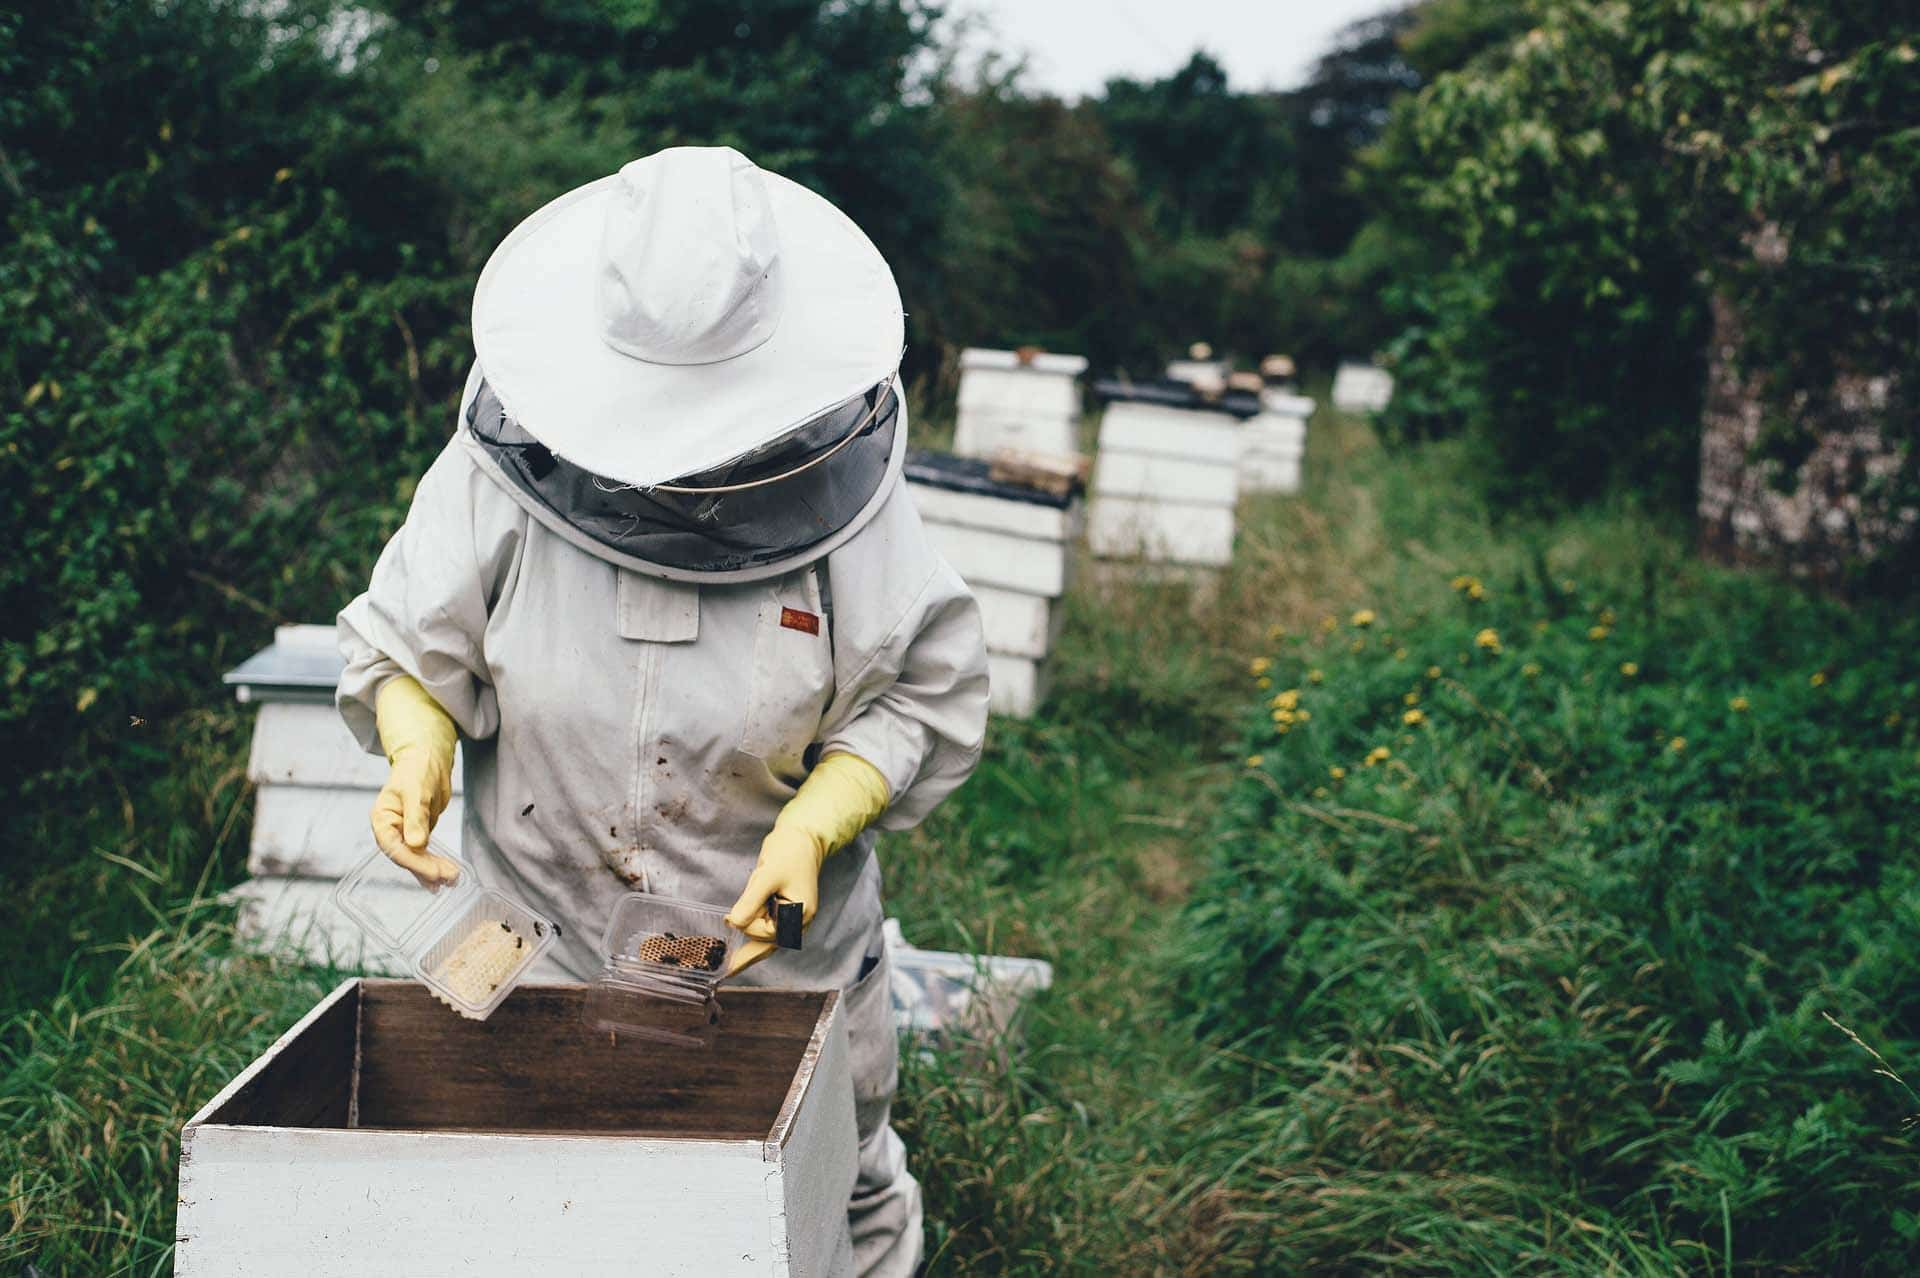 Beekeeper in beekeeping suit examining a tray of bees in a commercial beehive sitting in a wooded area.